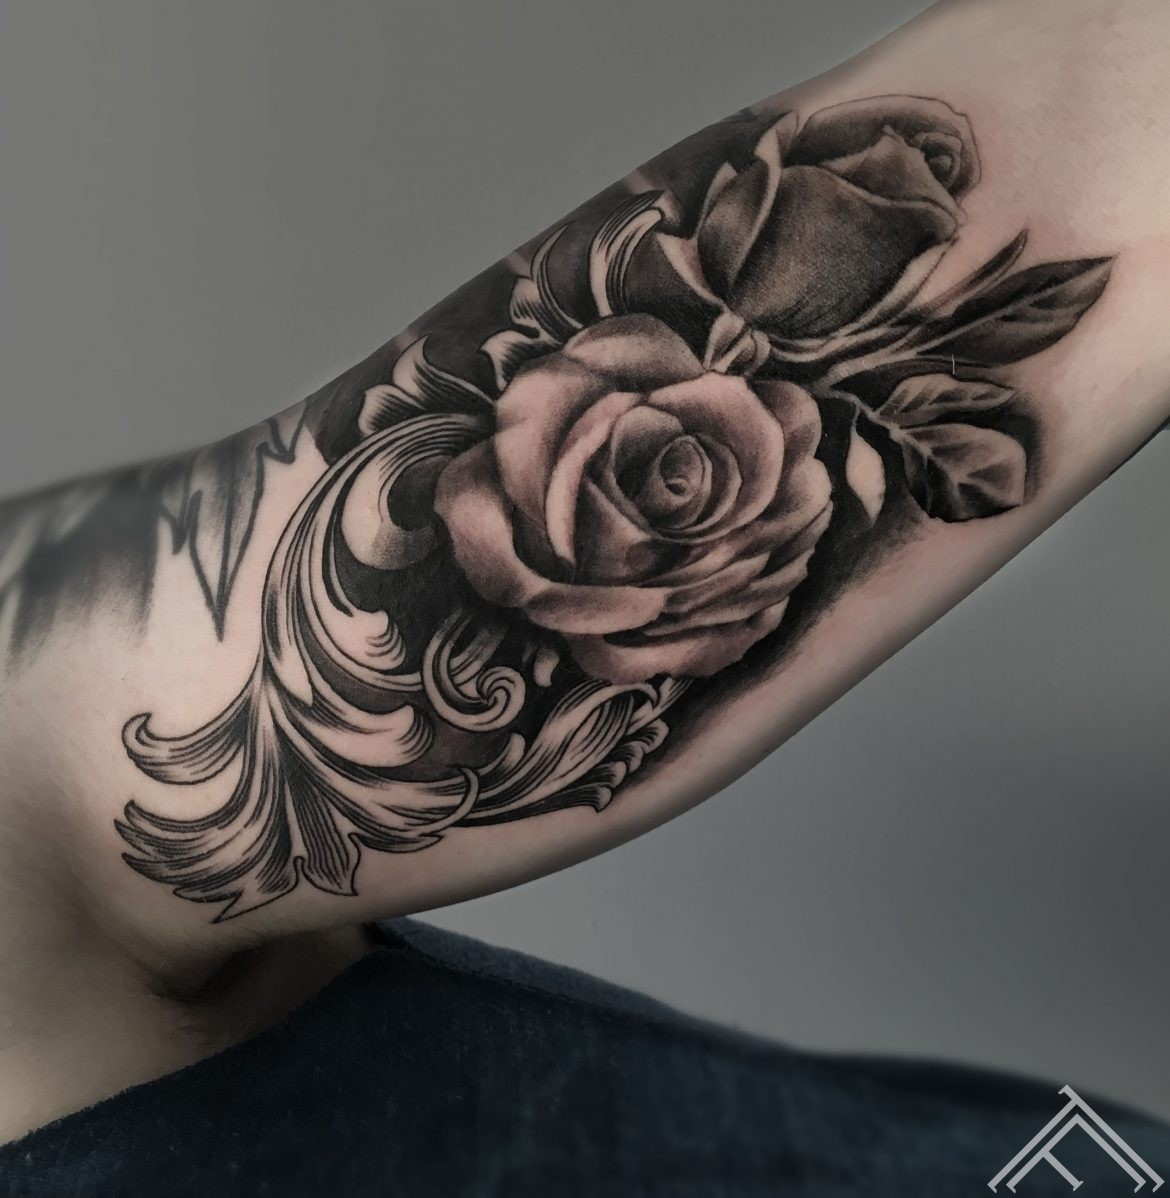 dmitrijsrazins-rozes-baroks-tattoofrequency